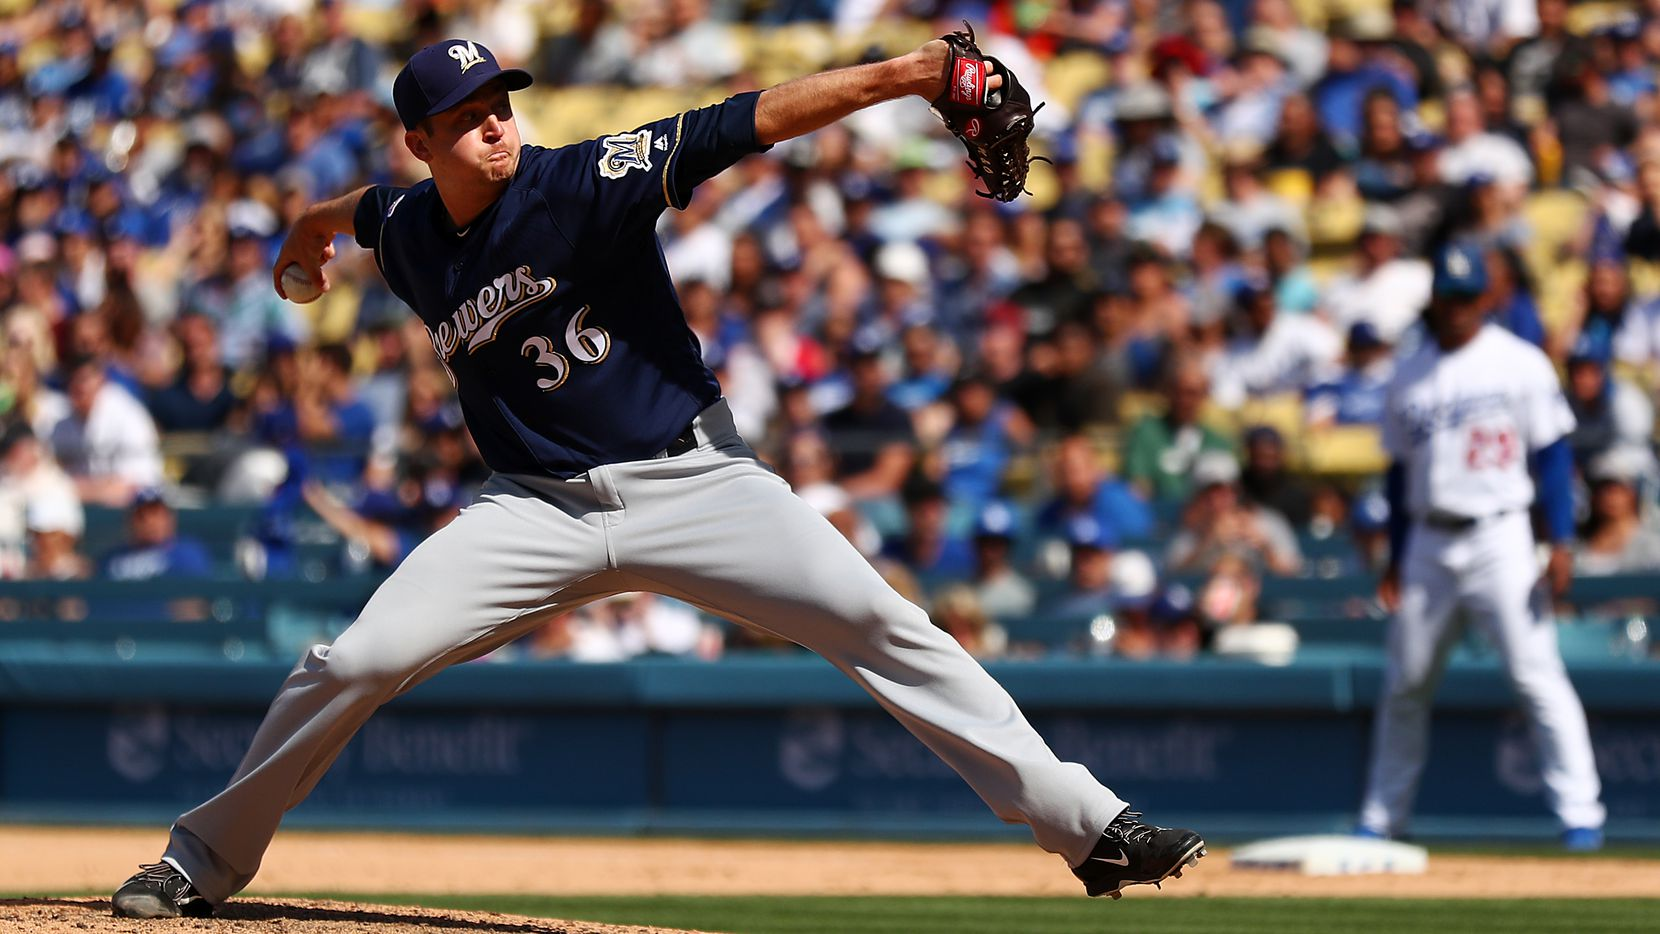 LOS ANGELES, CALIFORNIA - APRIL 14: Jake Petricka #36 of the Milwaukee Brewers throws a pitch against the Los Angeles Dodgers during the eighth inning at Dodger Stadium on April 14, 2019 in Los Angeles, California. (Photo by Yong Teck Lim/Getty Images)